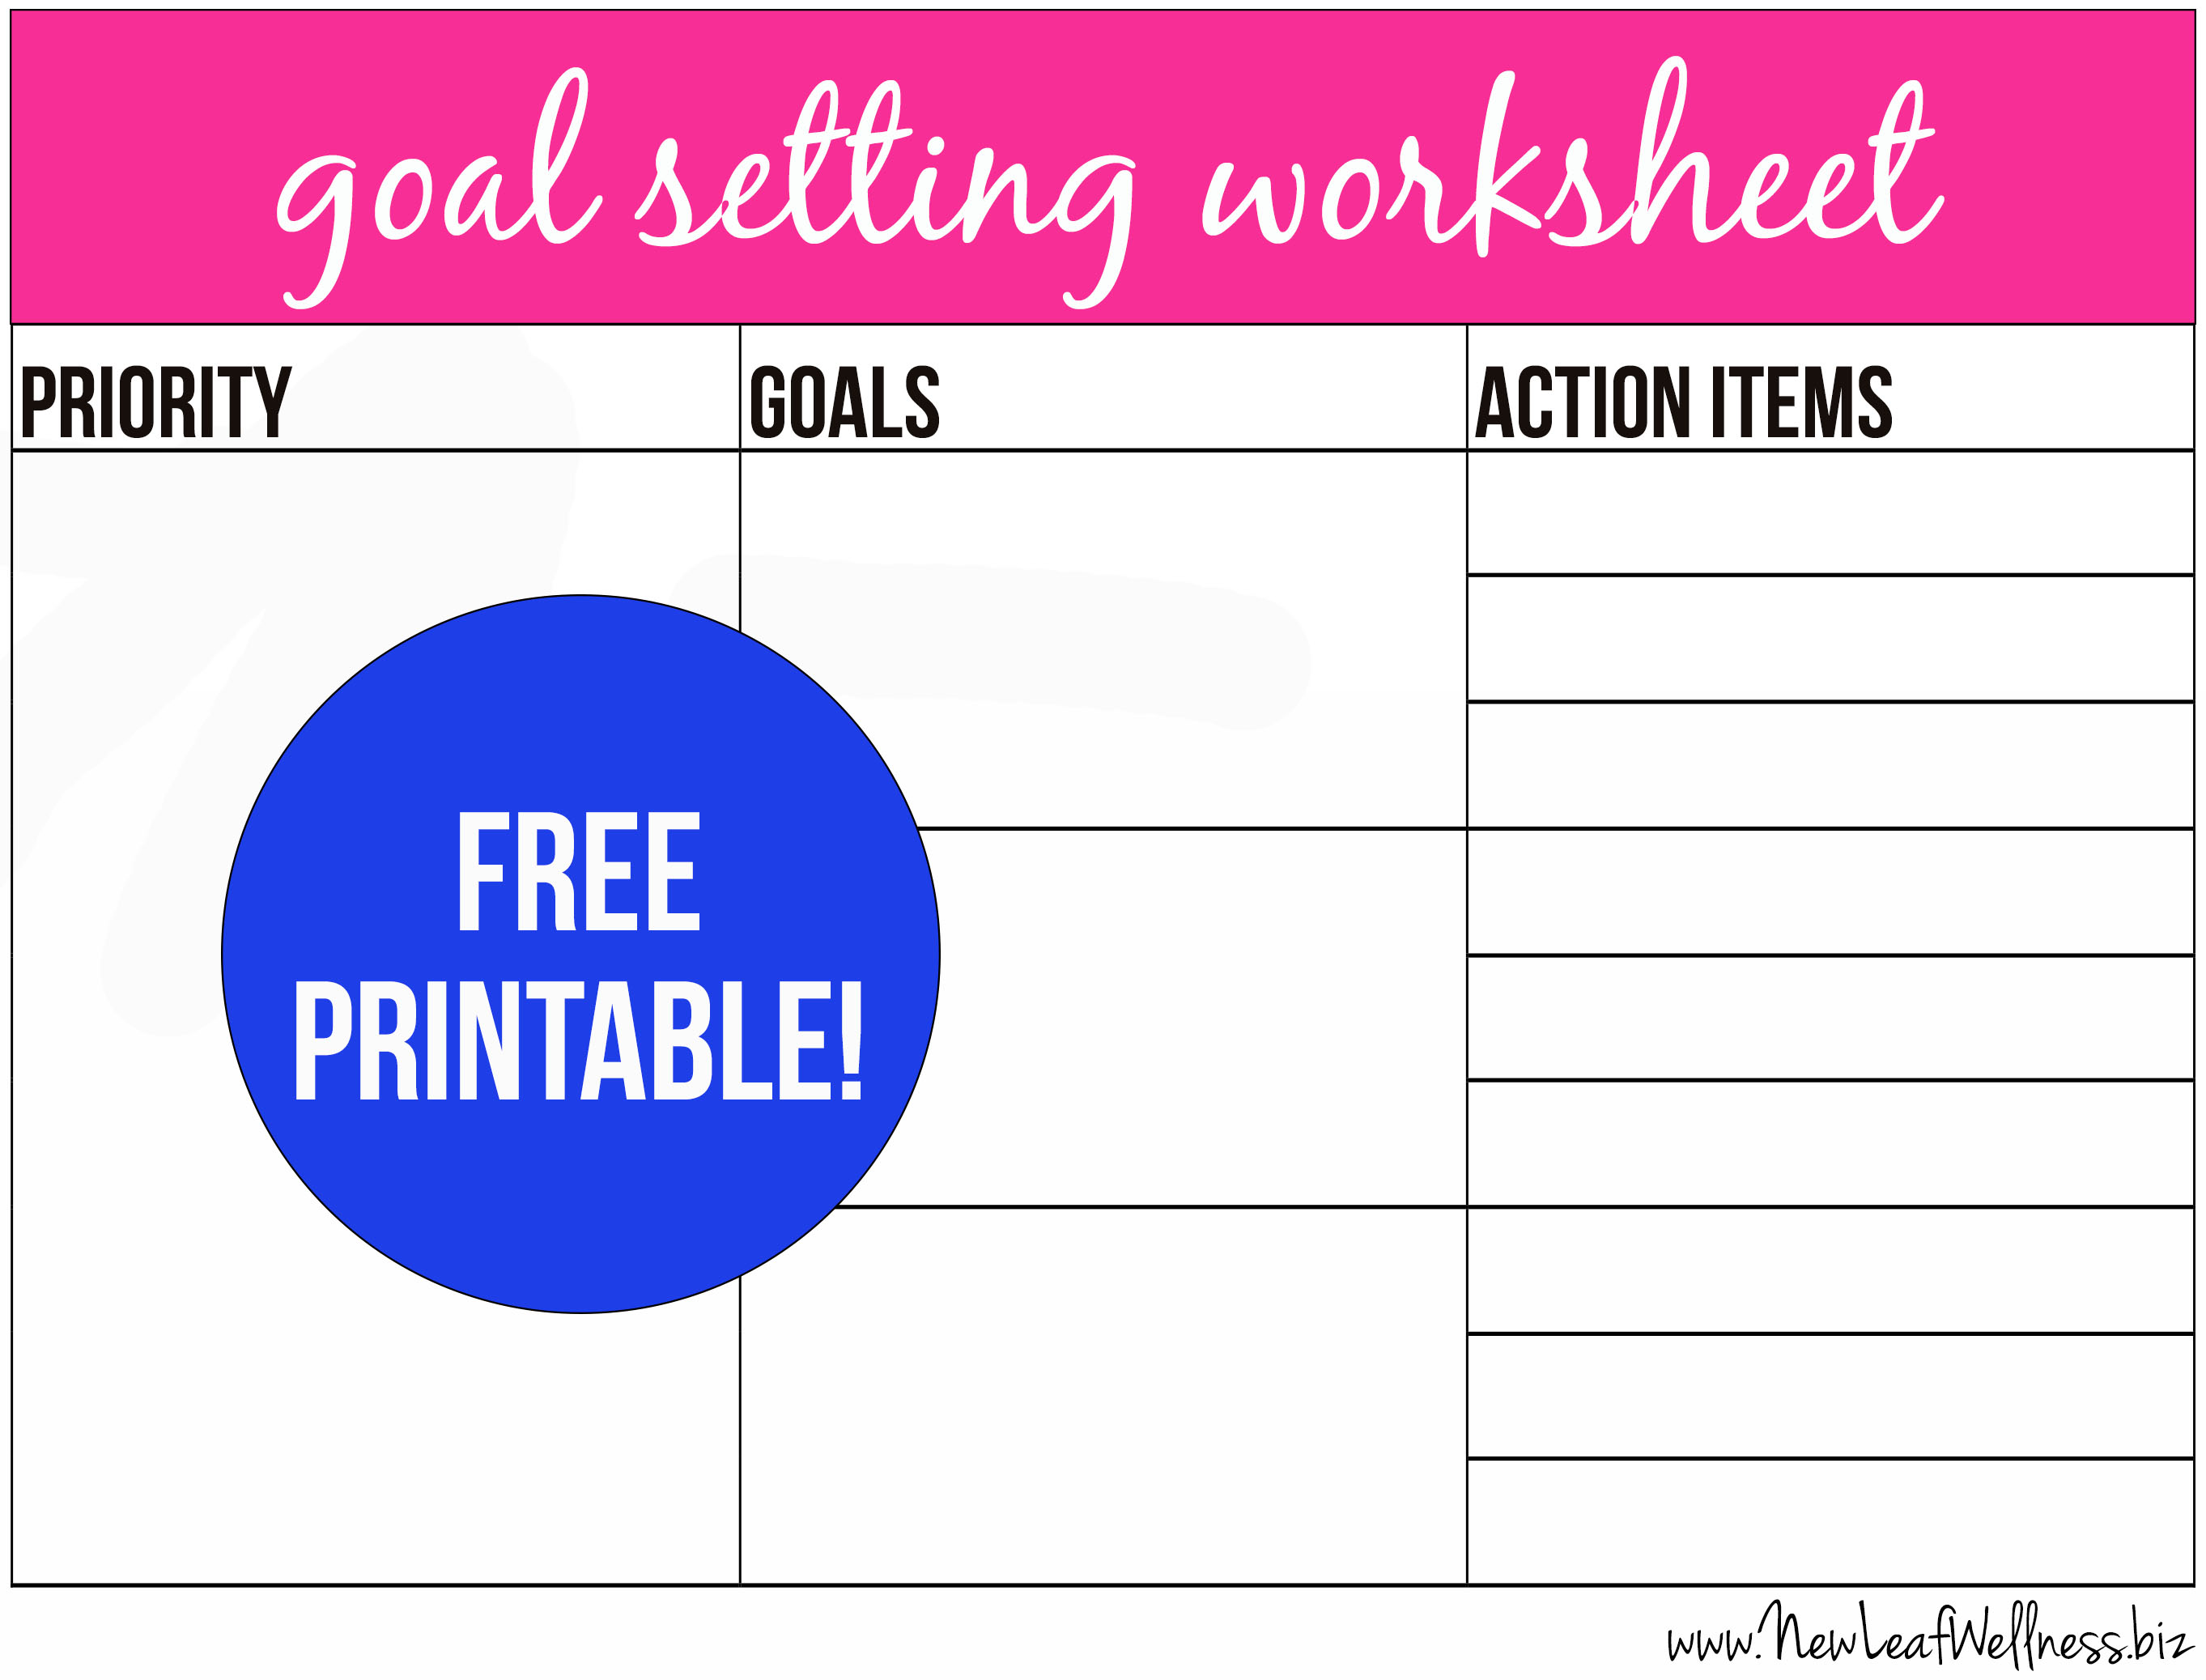 Creative Goals Worksheets Printable Worksheets And Activities For Teachers Parents Tutors And Homeschool Families